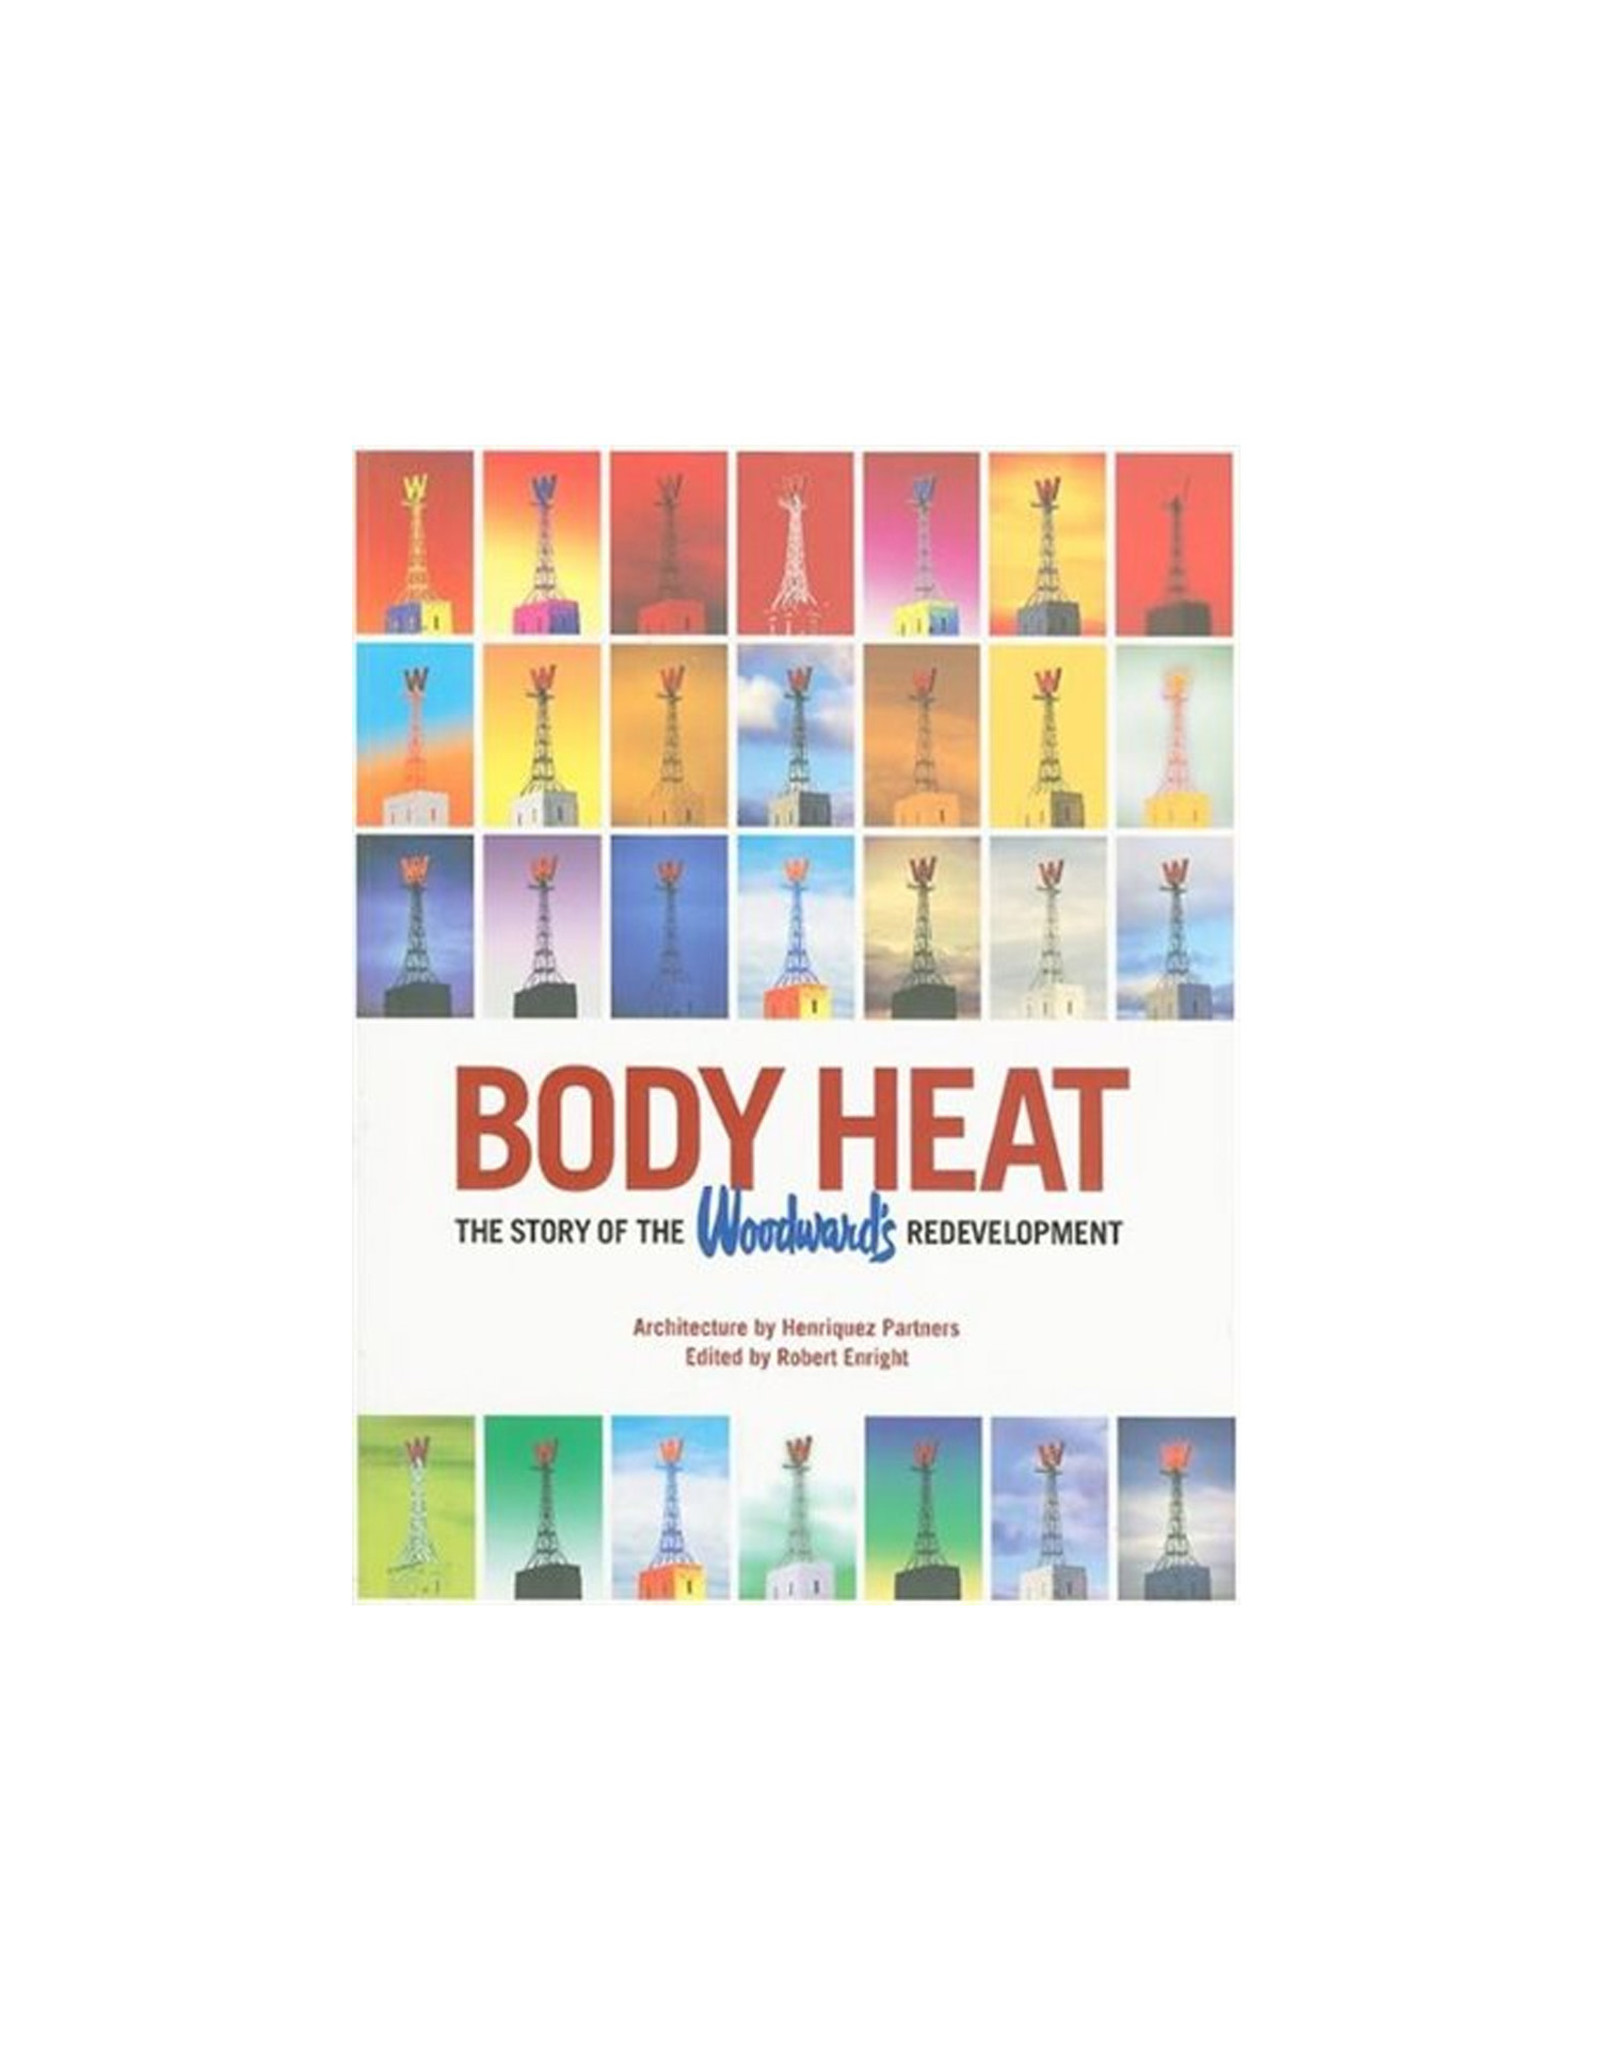 Body Heat: The Story of the Woodward's Redevelopment